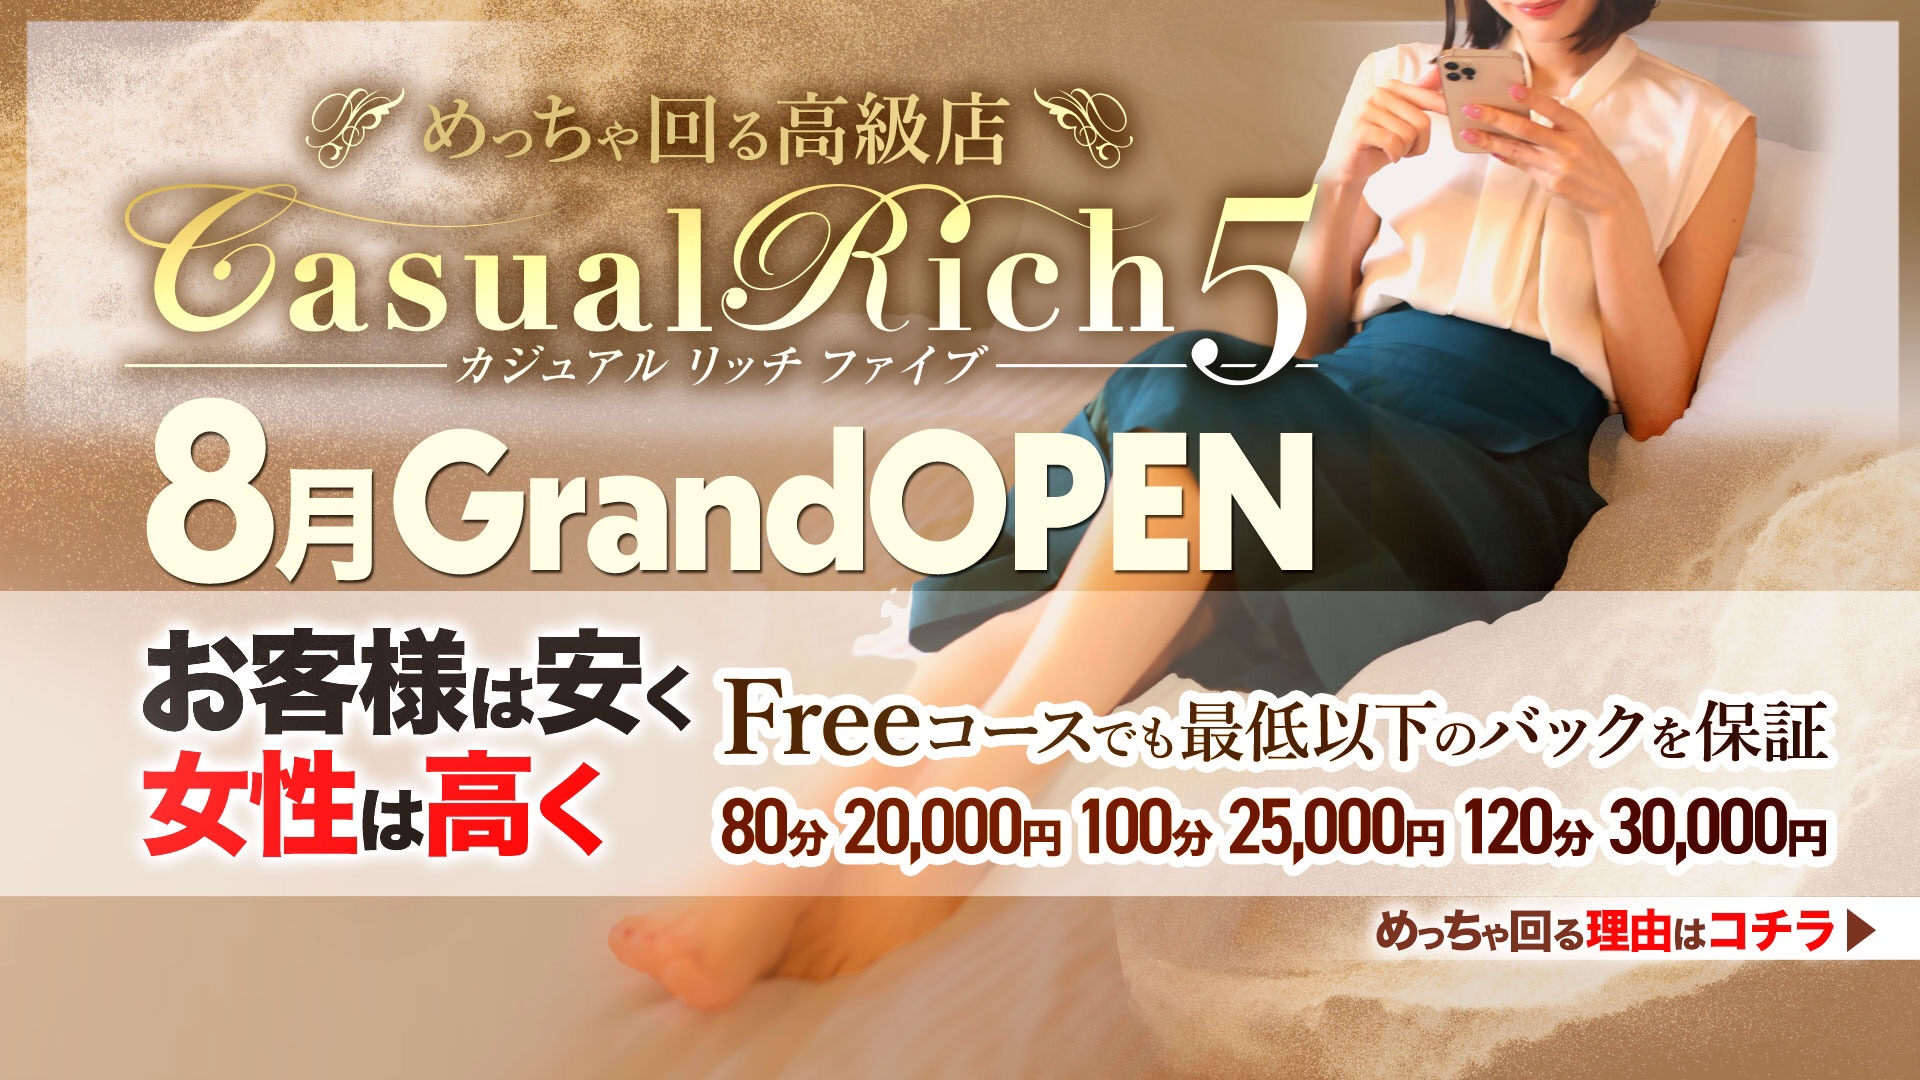 Casual Rich 5の求人画像